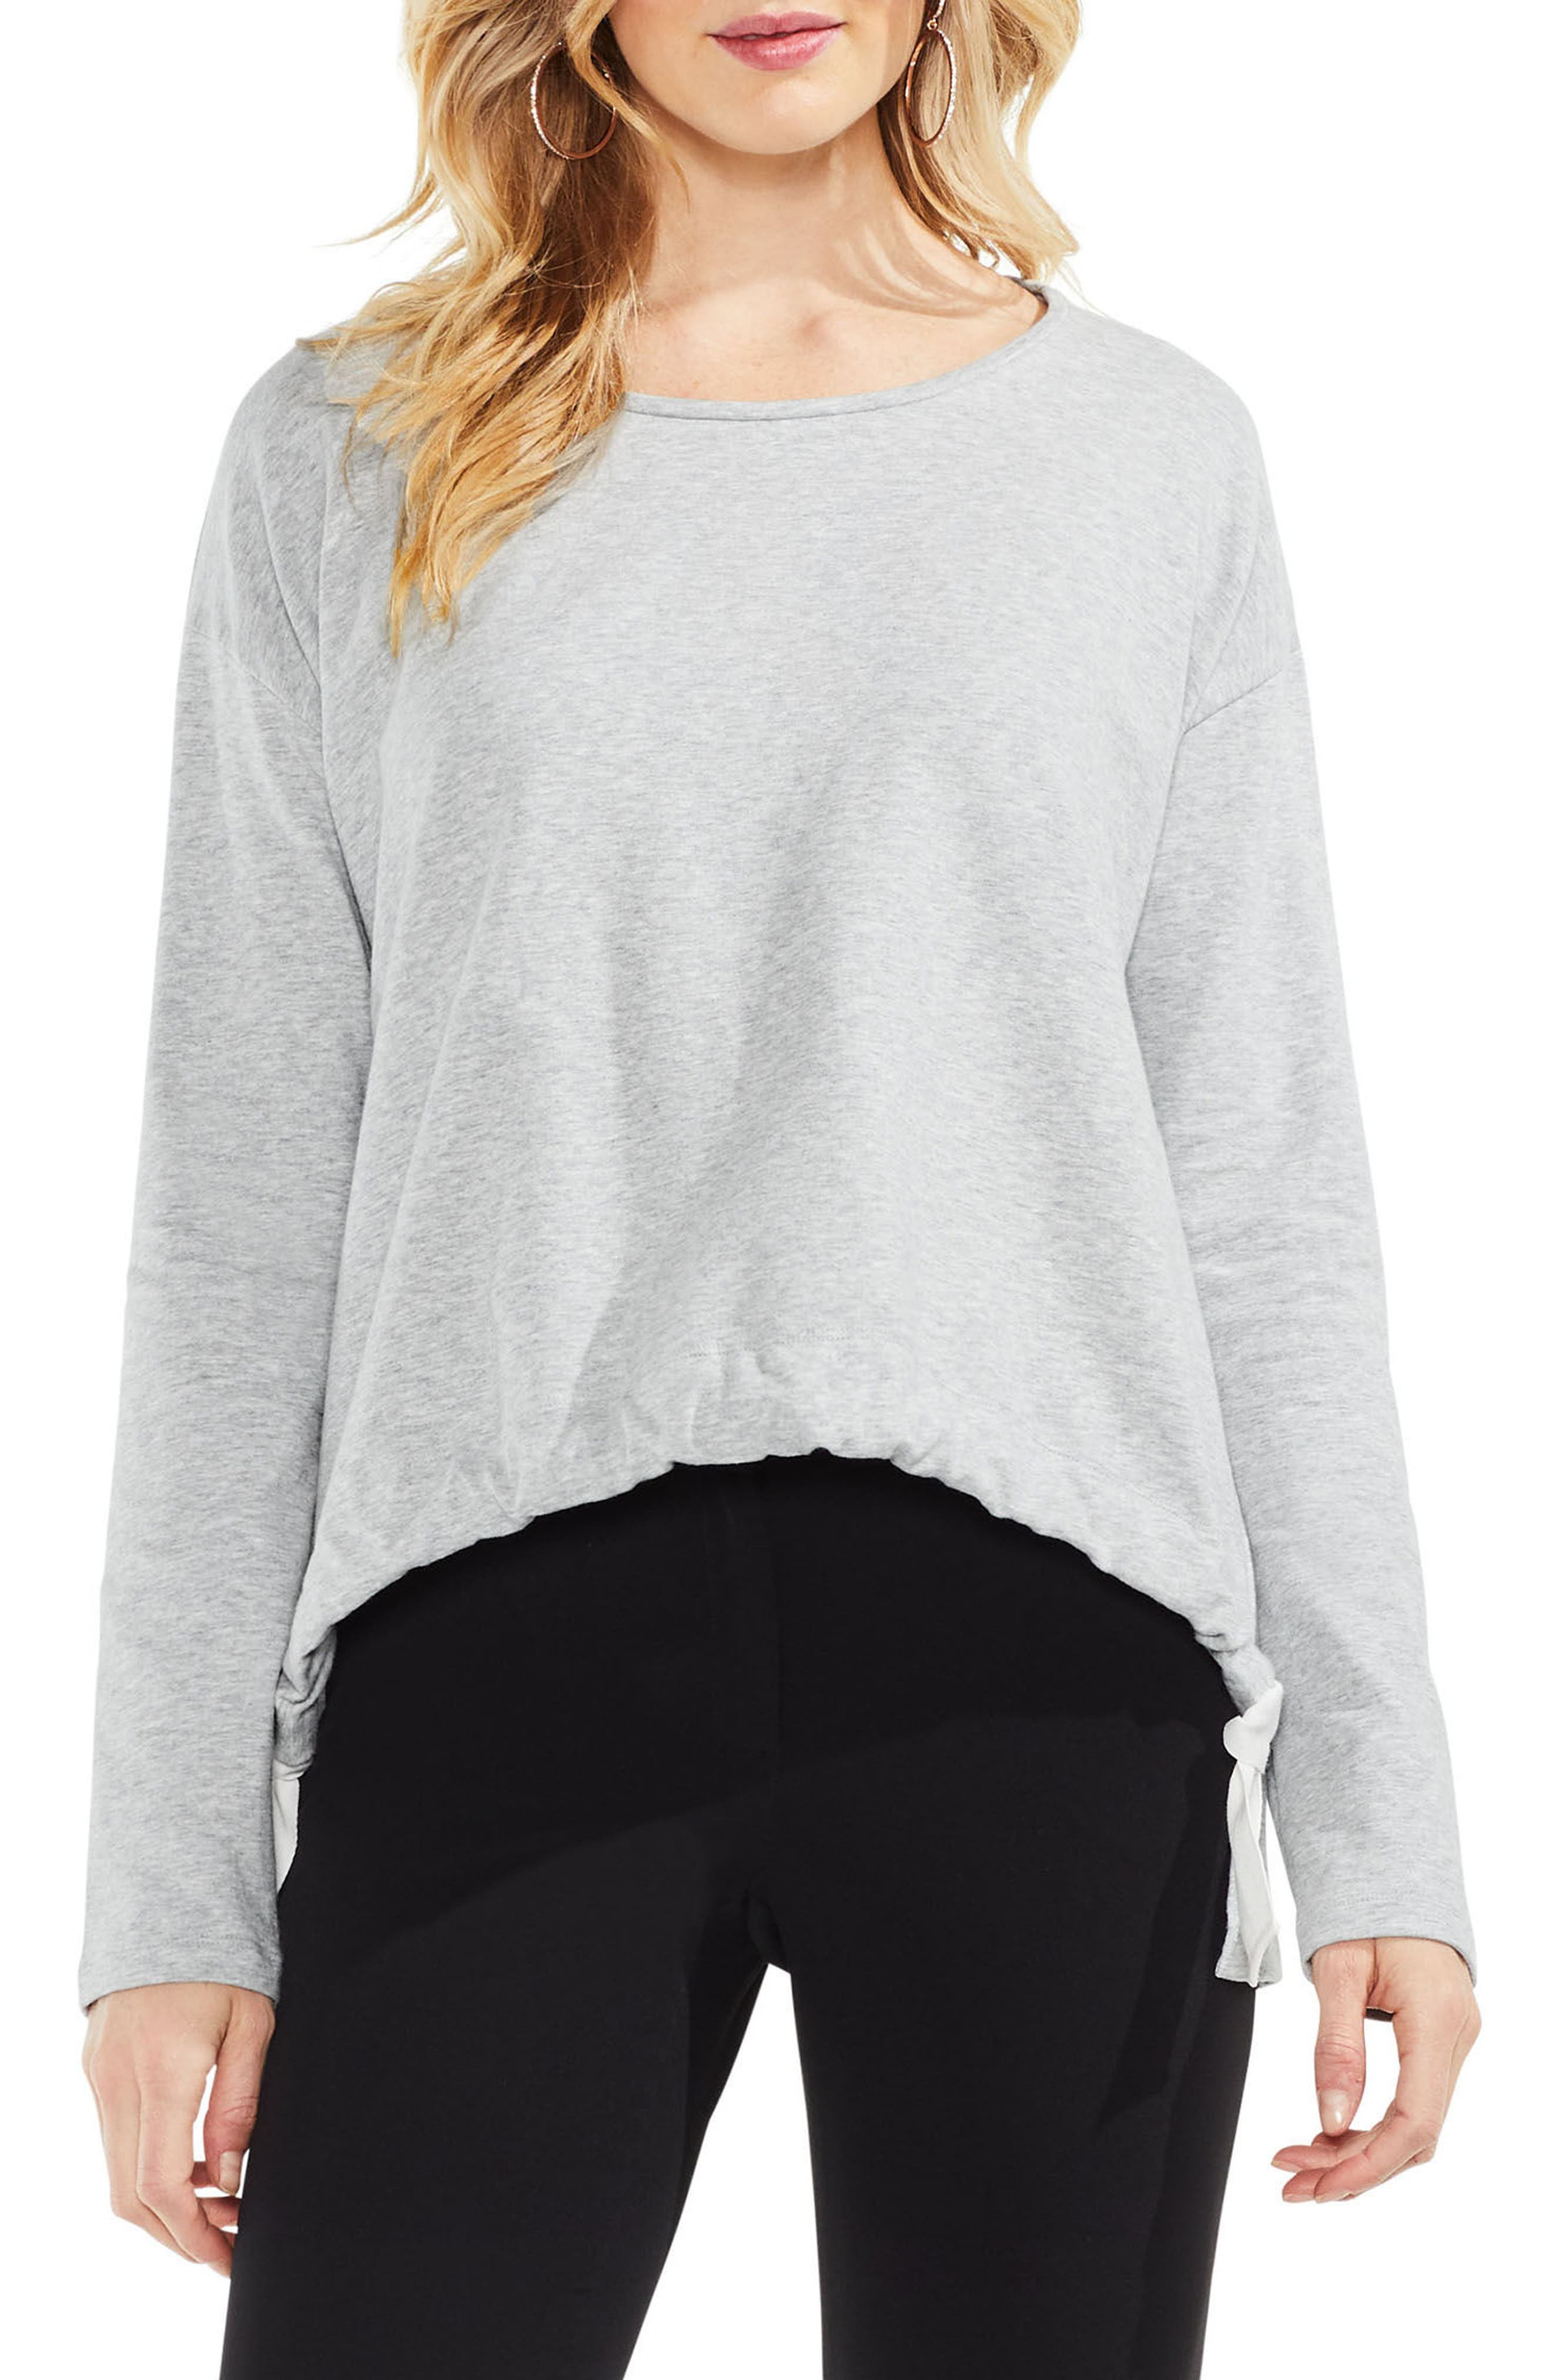 French Terry Drawstring Front Top,                             Main thumbnail 1, color,                             050